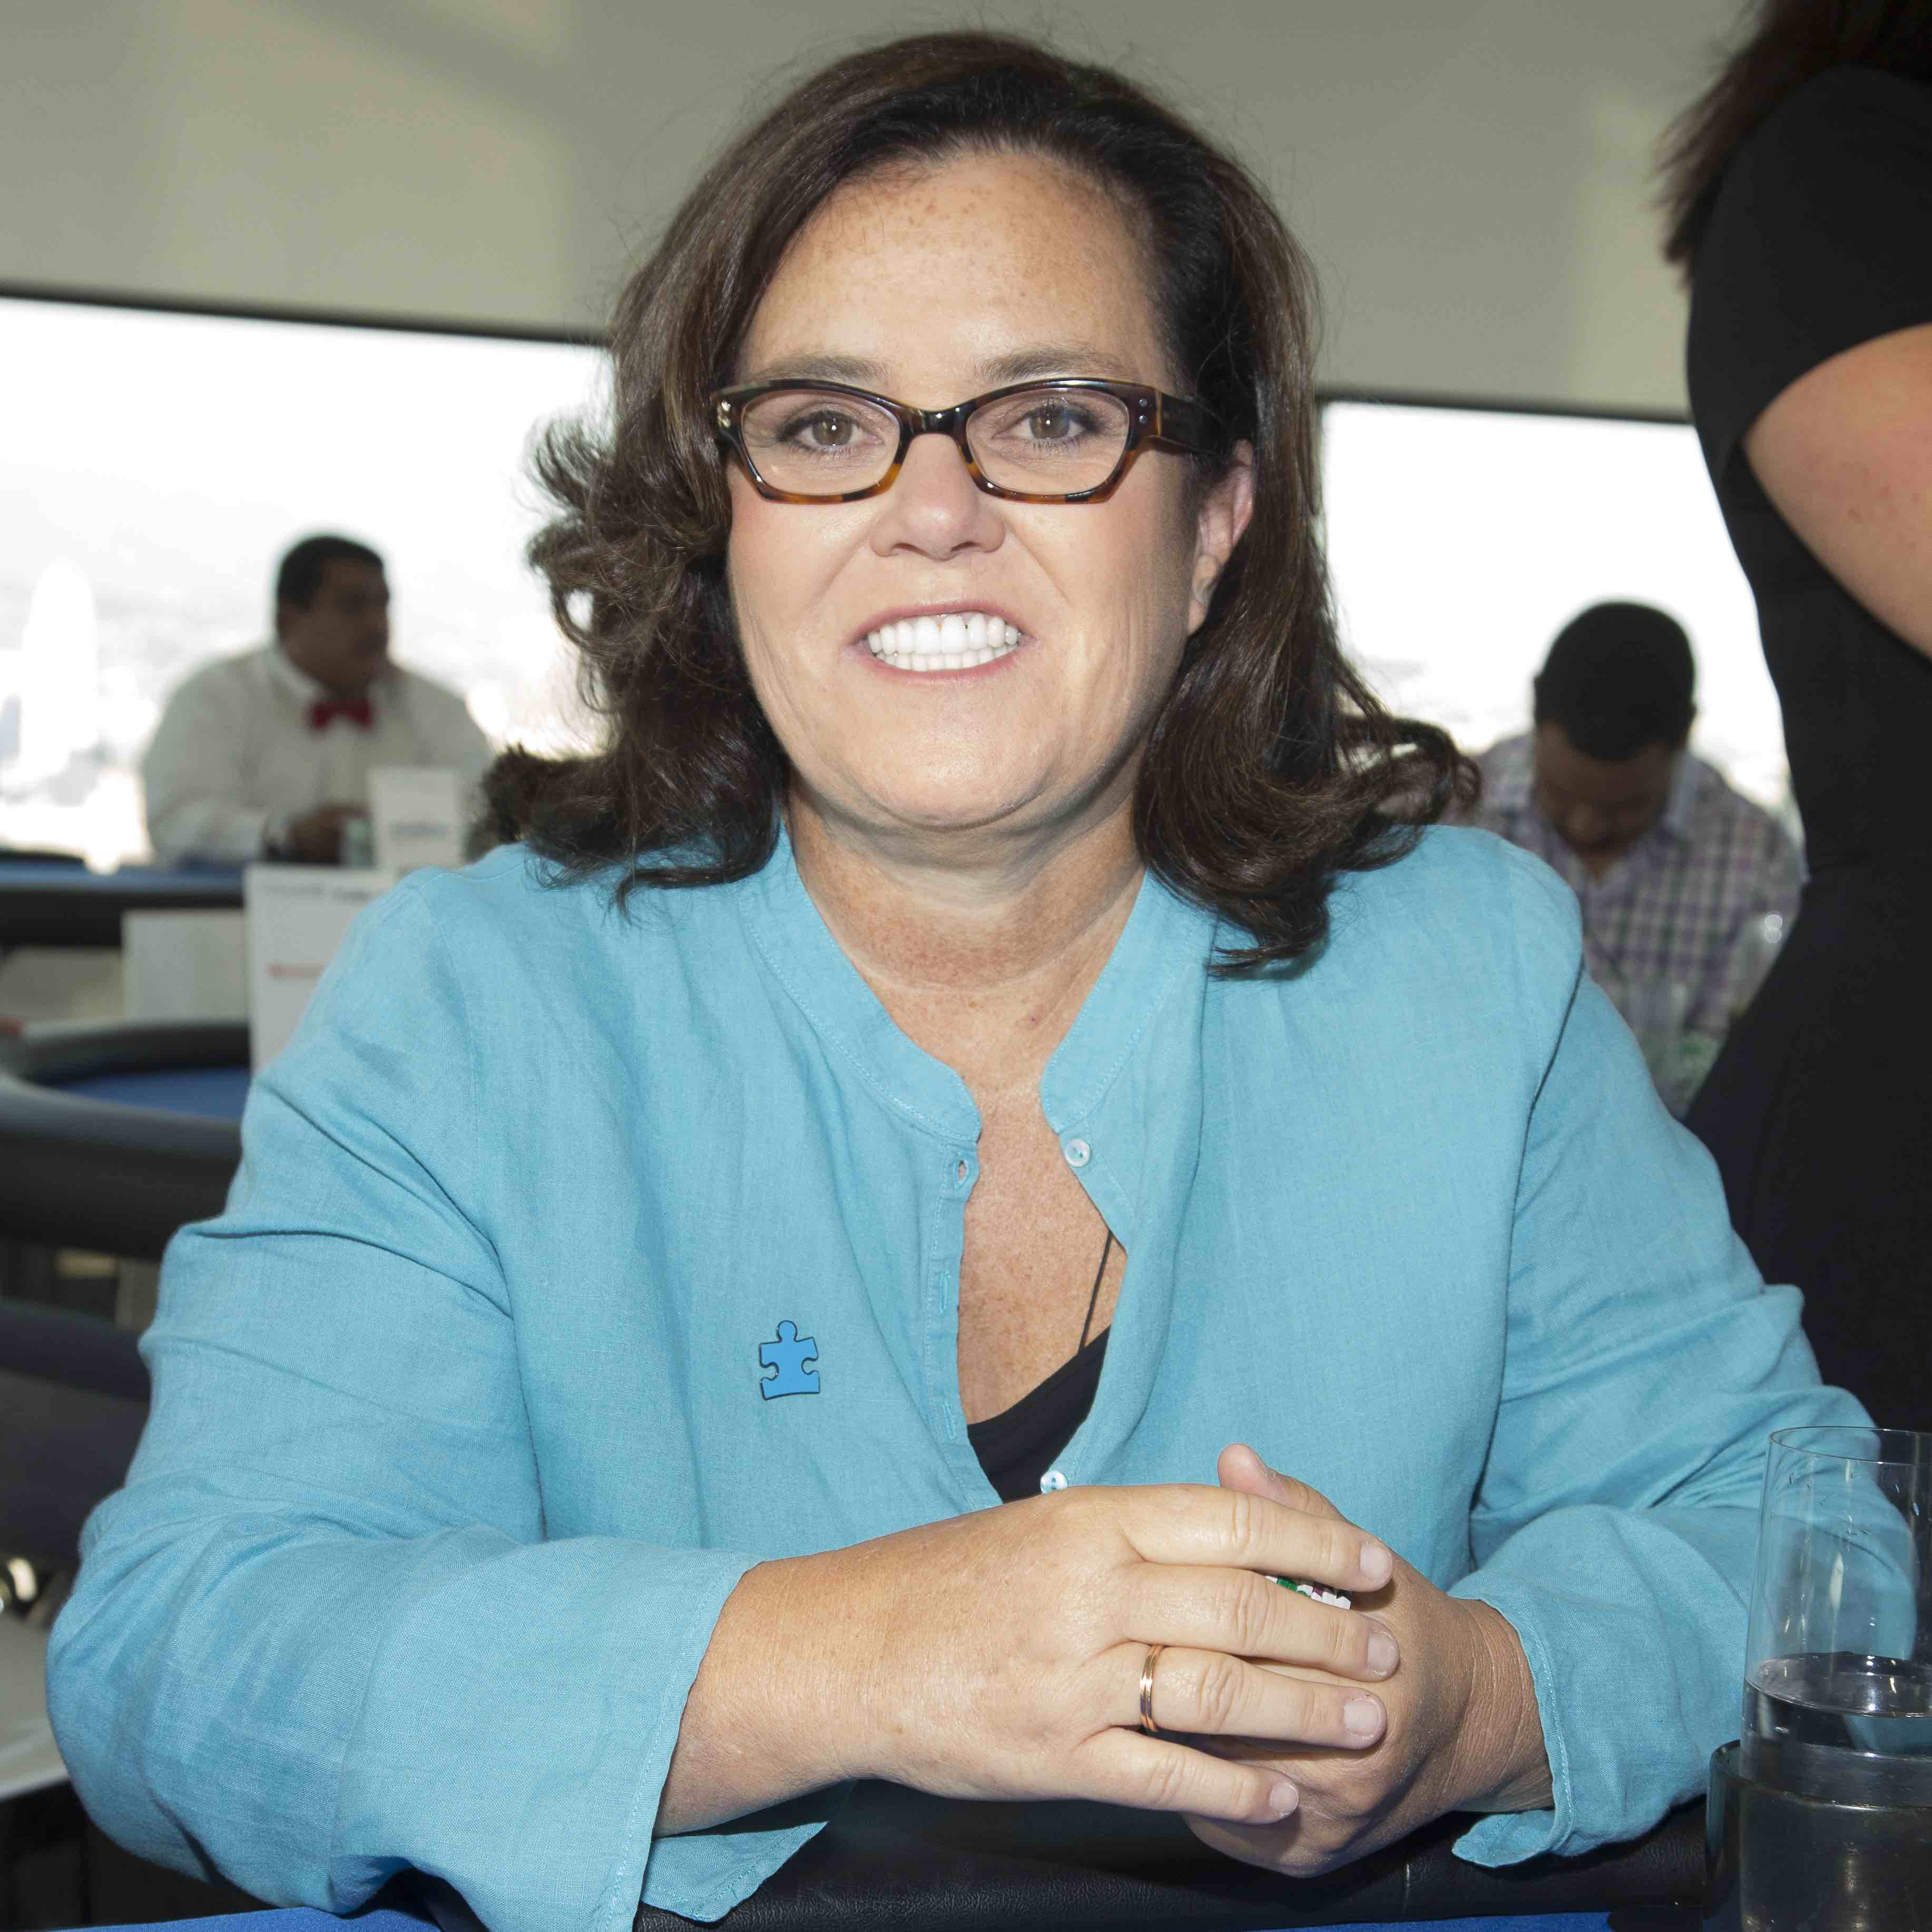 LOS ANGELES, CA - AUGUST 06:  Rosie O'Donnell attends the 4th Annual Ed Asner And Friends Poker Tournament For Autism Speaks